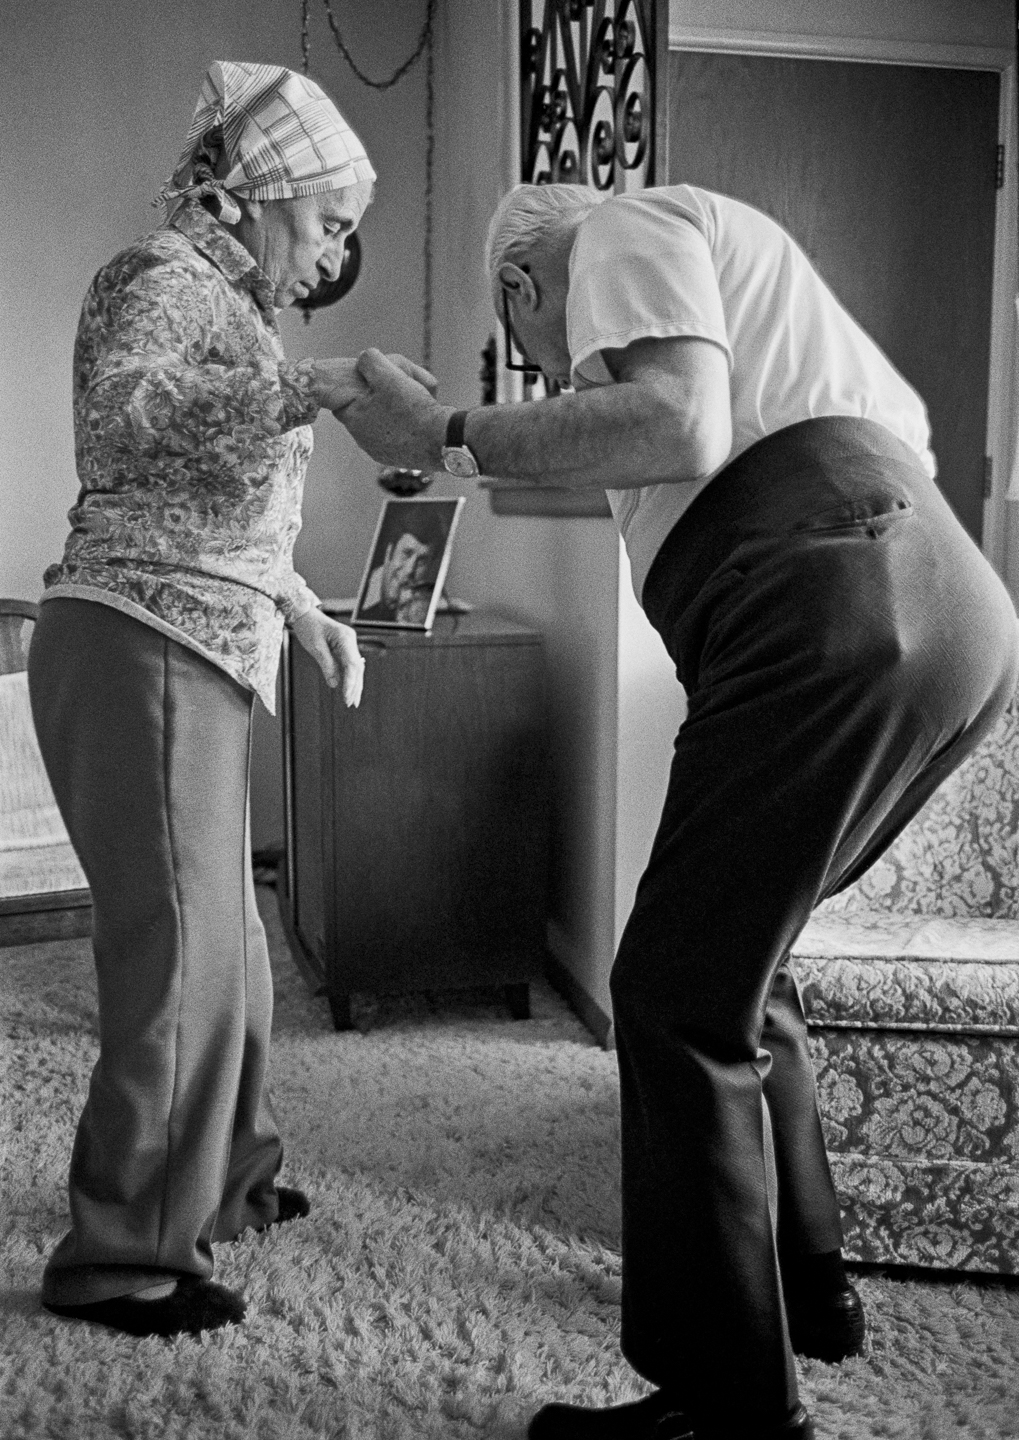 Mother would get lost in the living room needing dad's guidance to her chair.